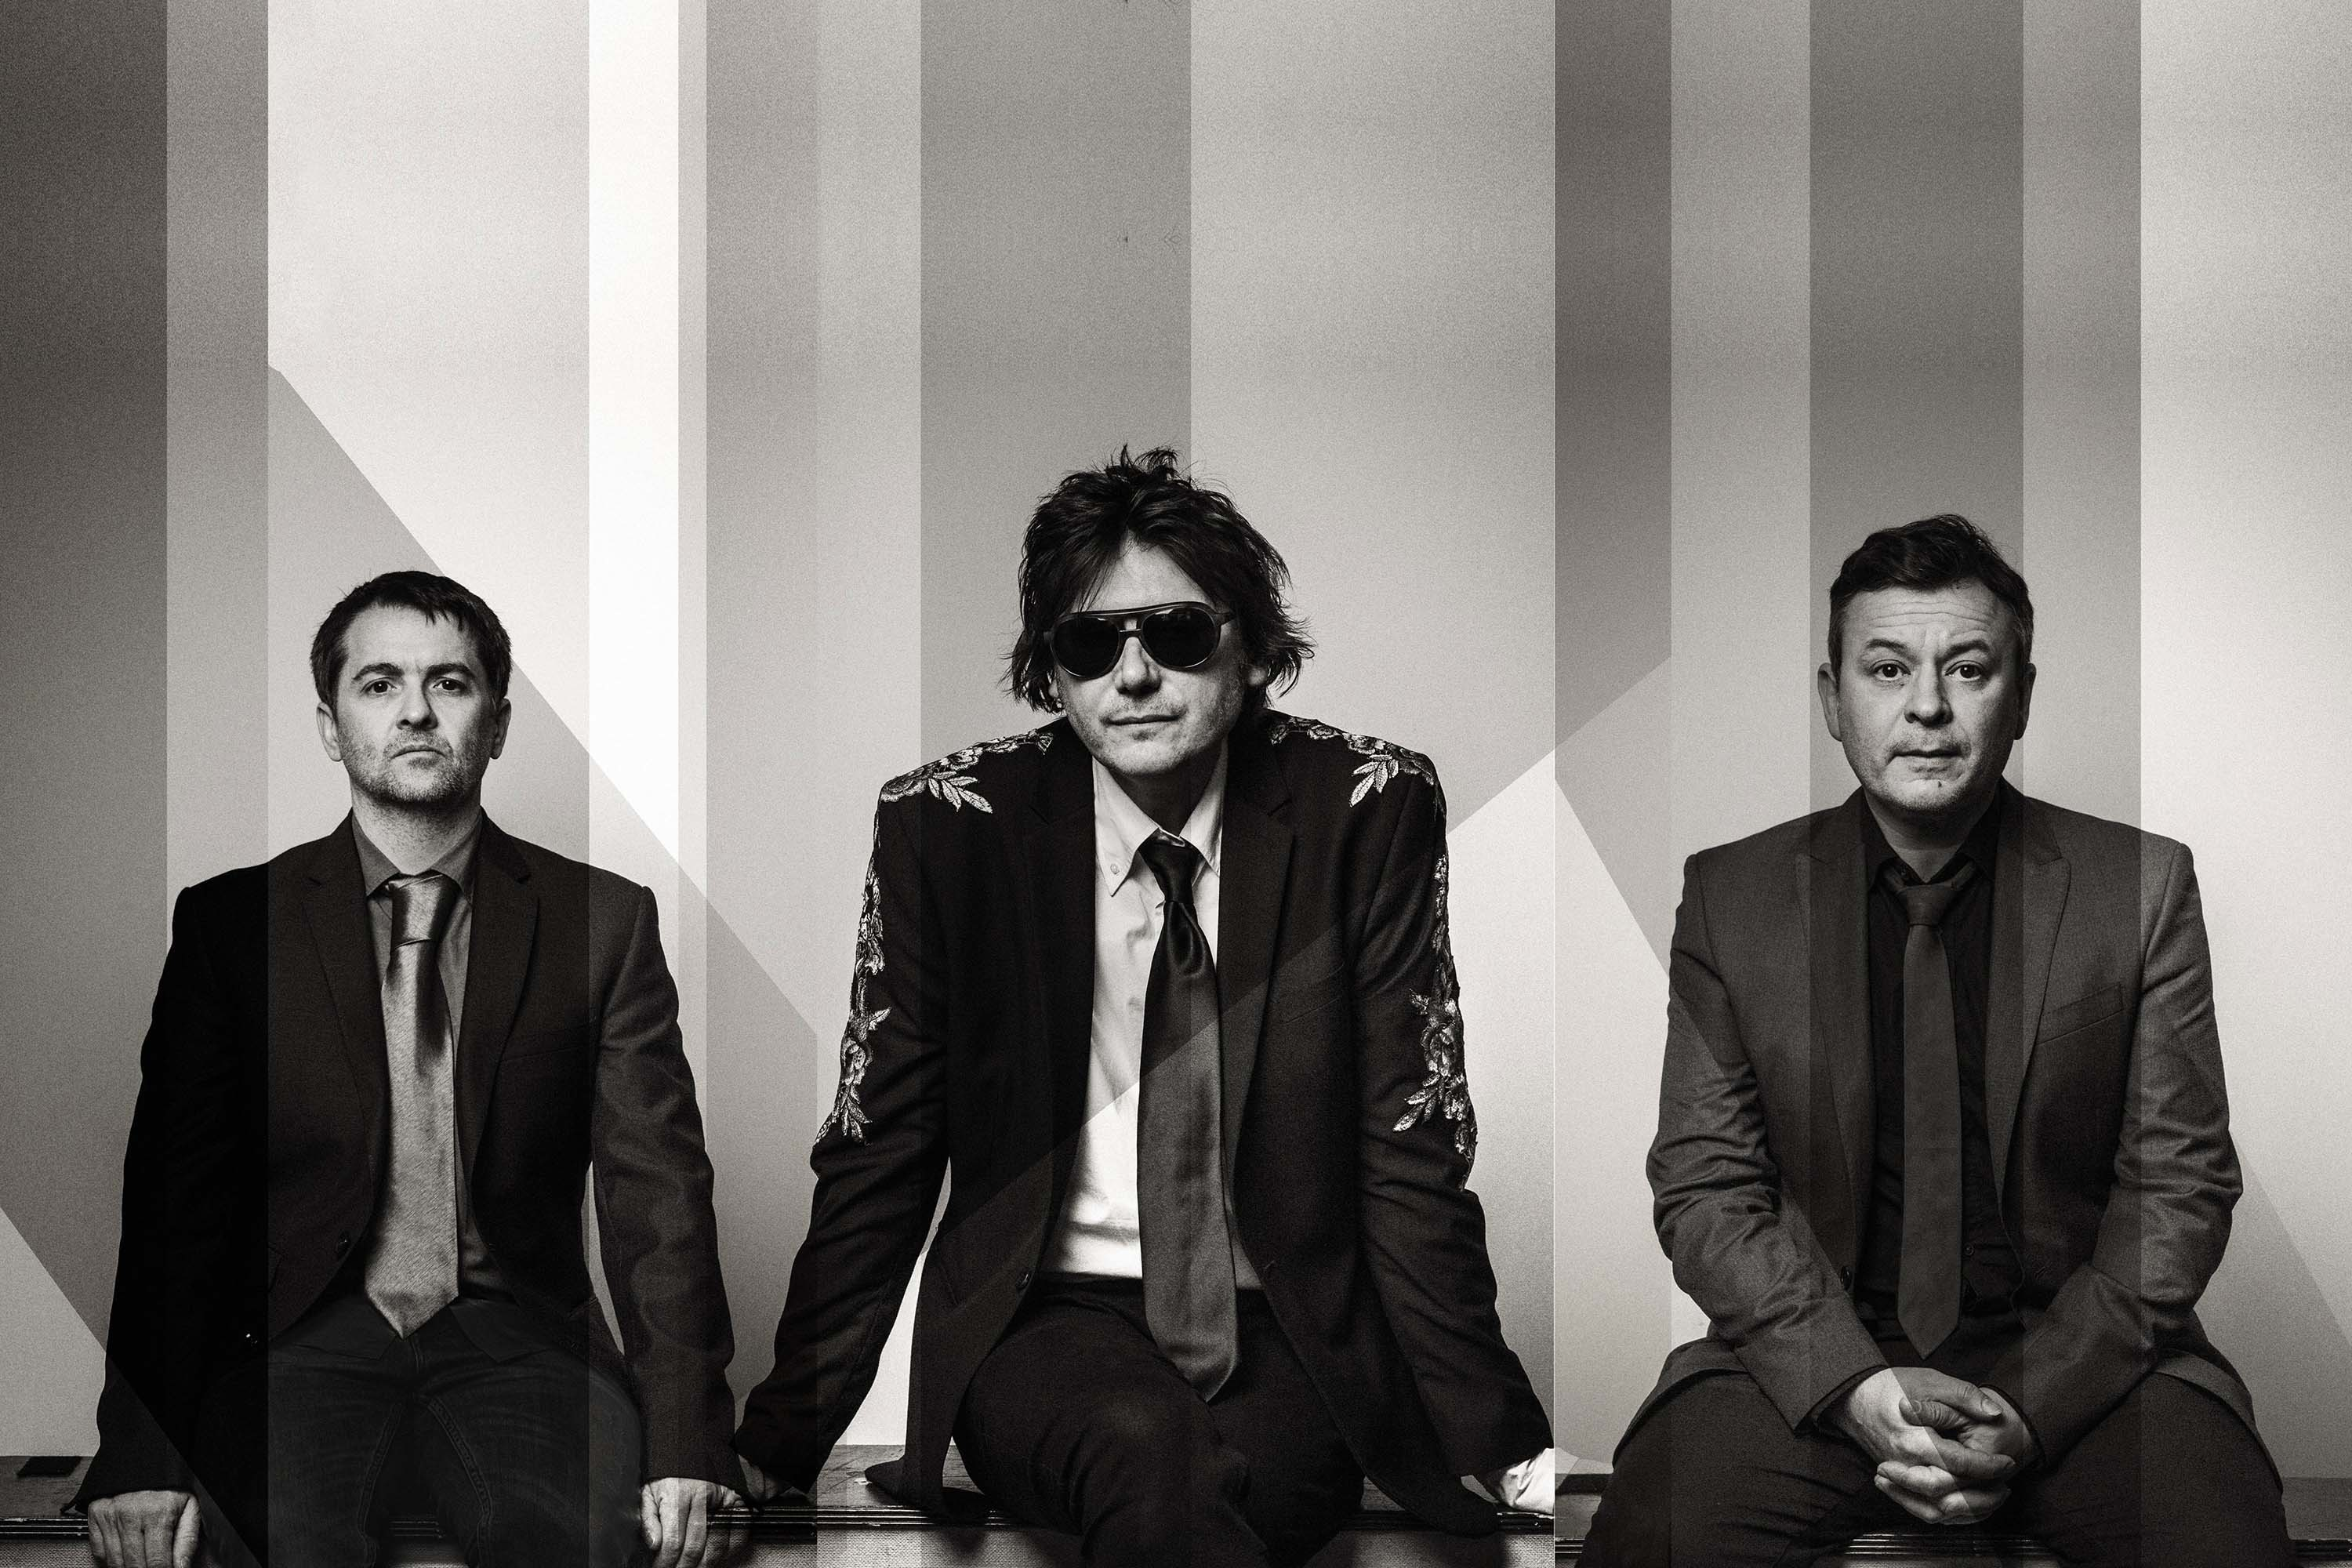 Manic Street Preachers announce new album 'Resistance Is Futile'